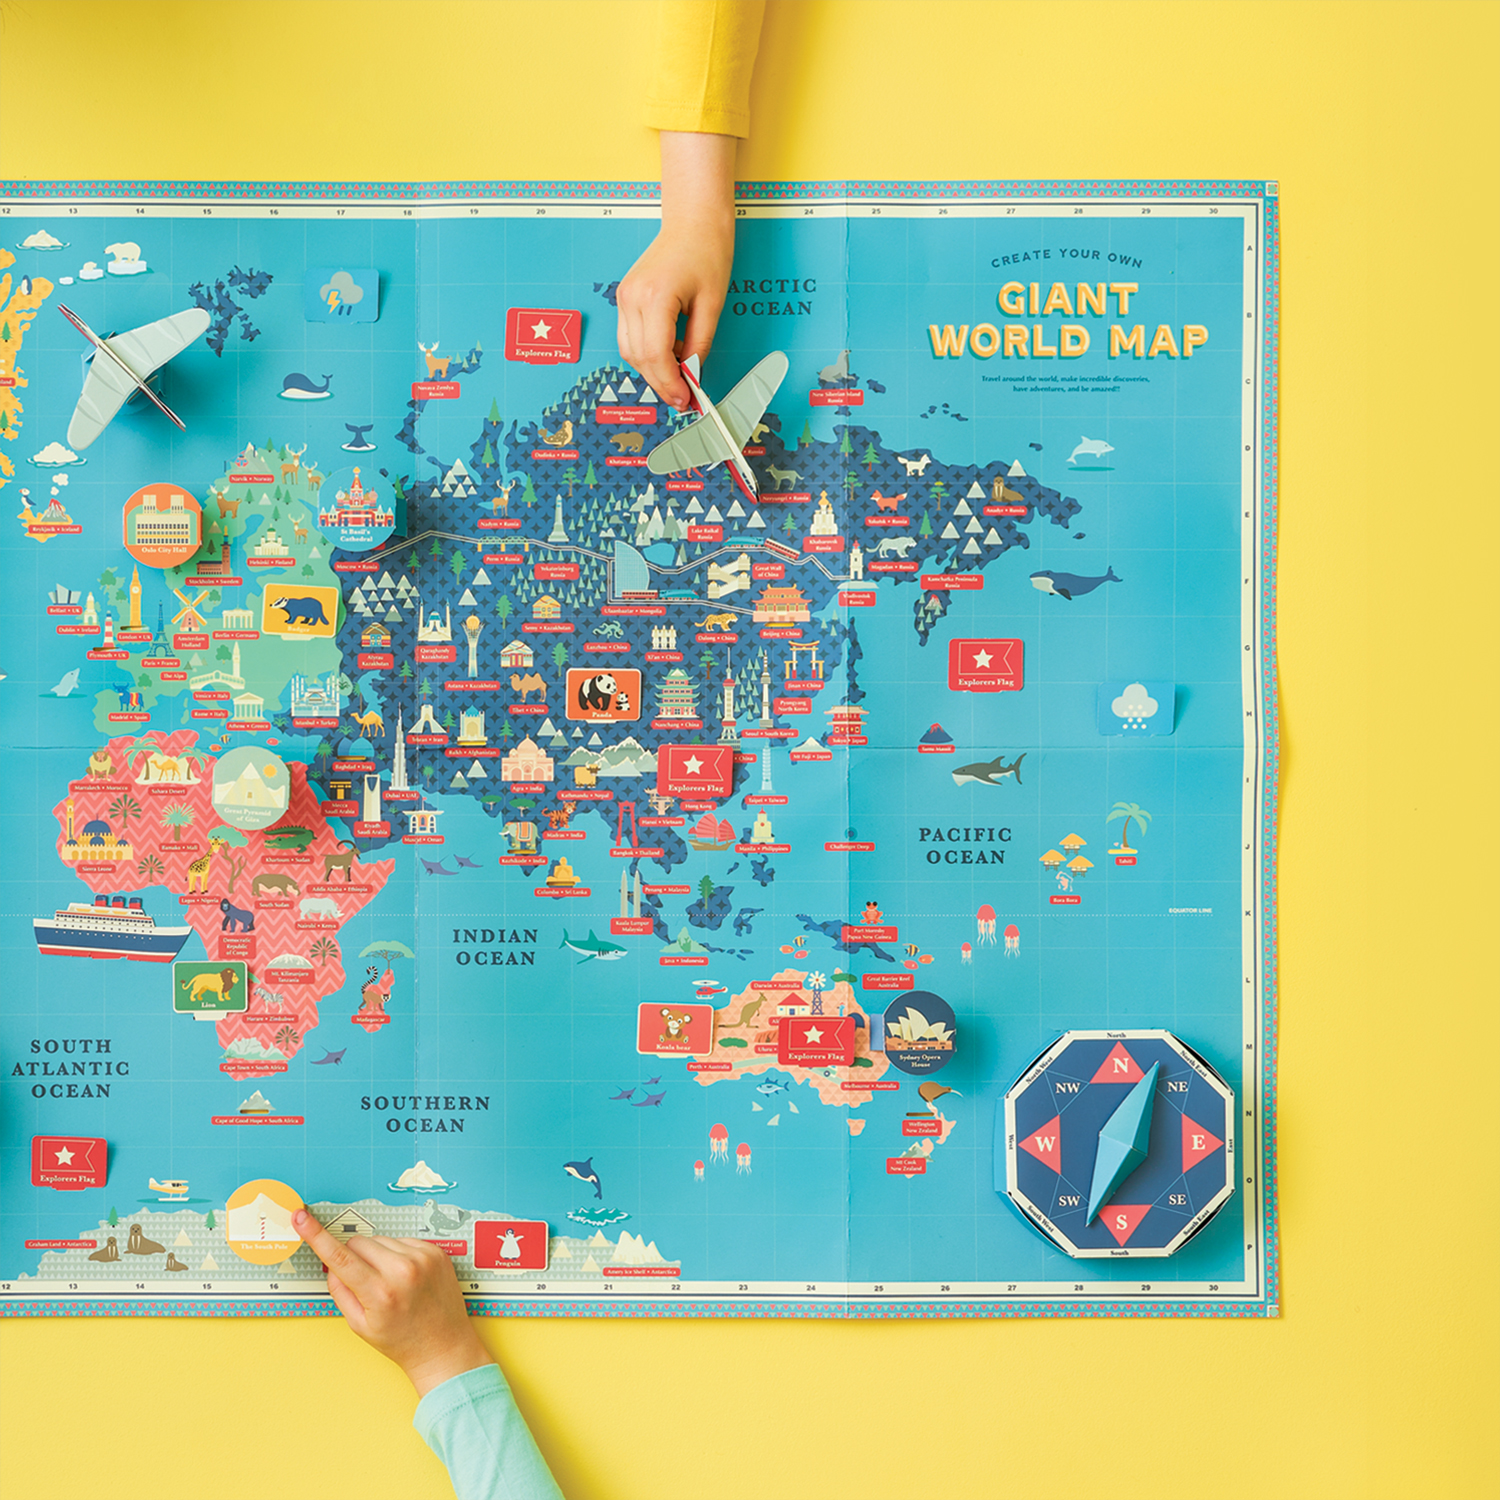 Create Your Own World Map Create Your Own Giant World Map   Shop Indie